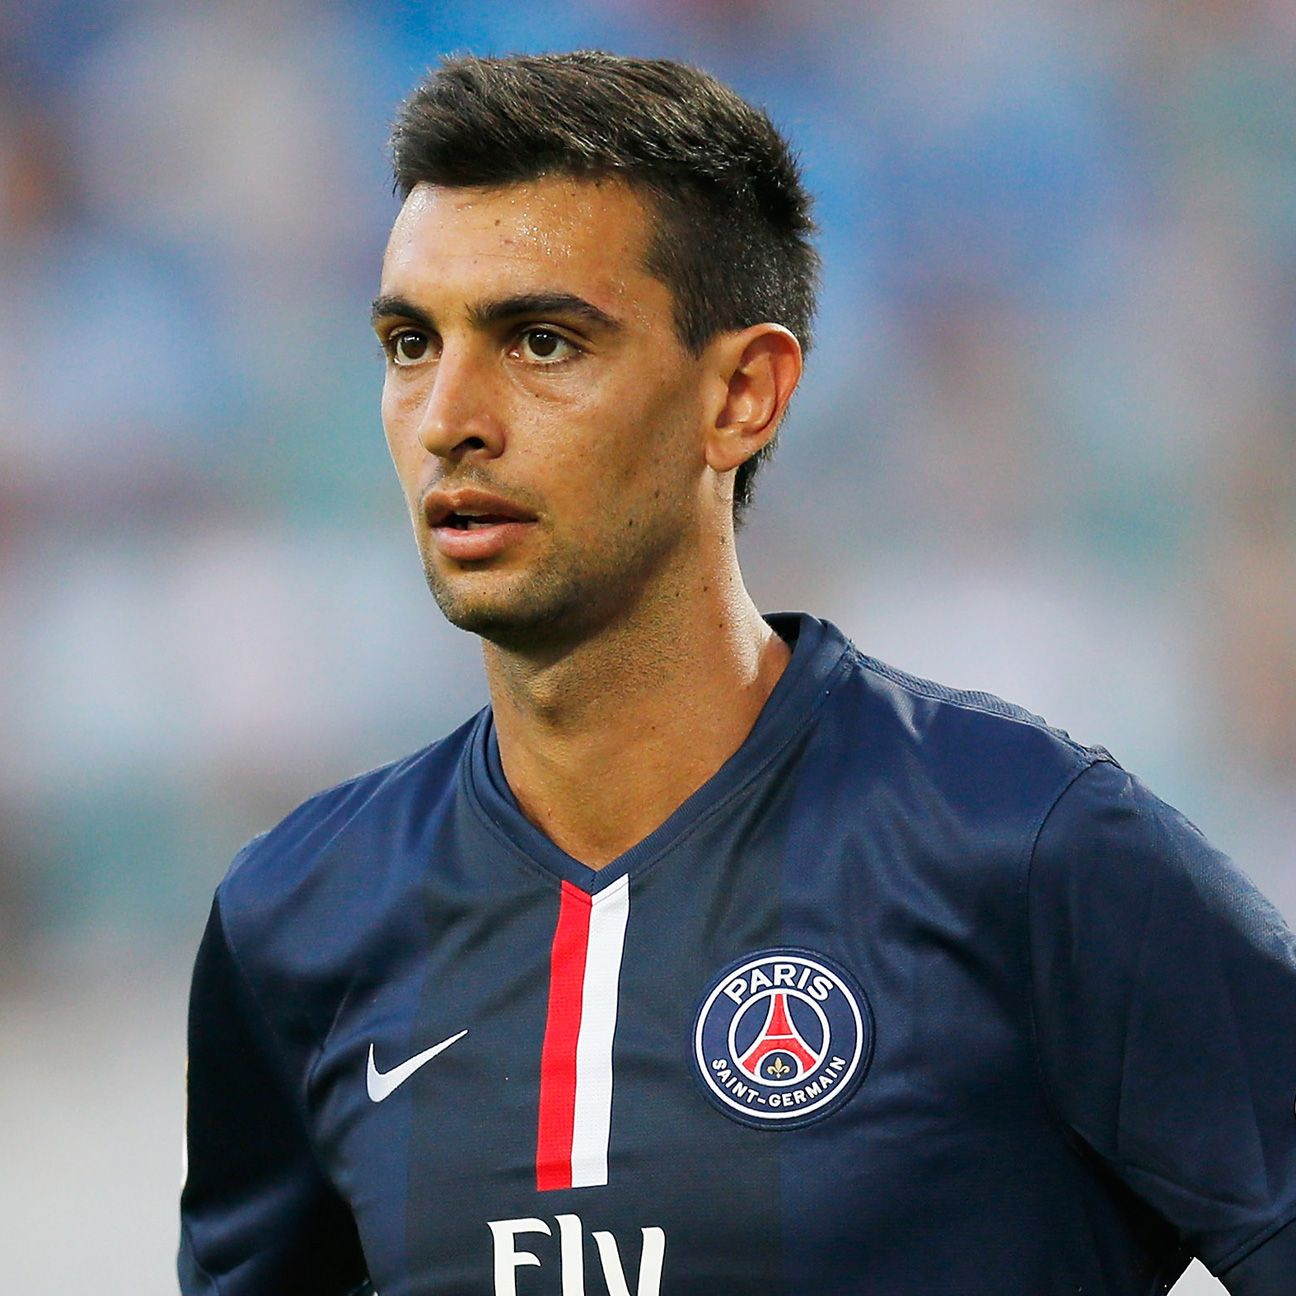 With so many key attacking players unavailable, Javier Pastore and other will have to take up the scoring duties for PSG this weekend.